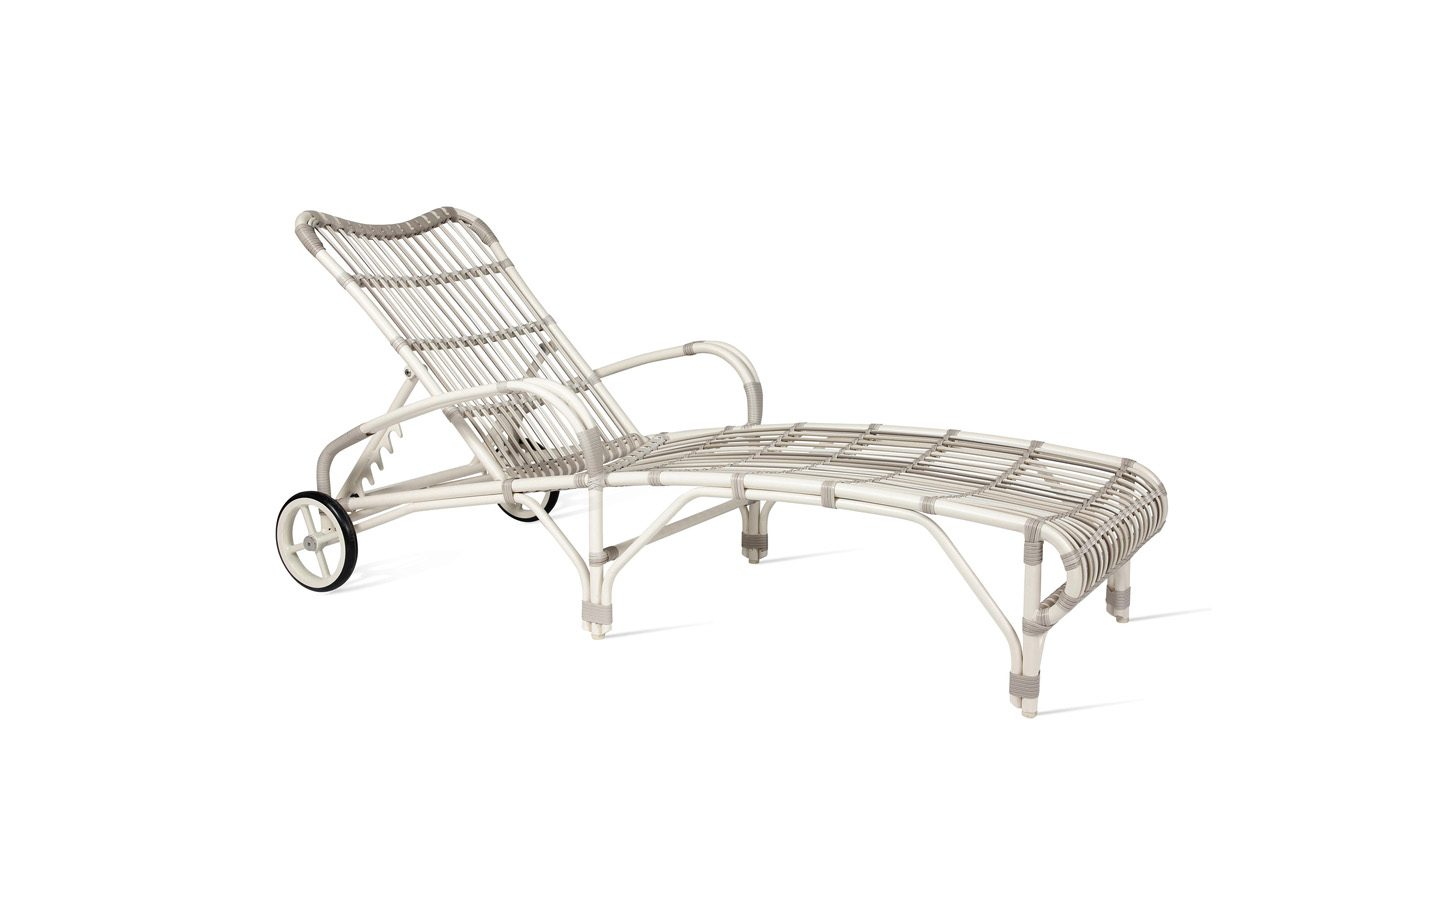 Lucy-sunlounger-outdoor-01